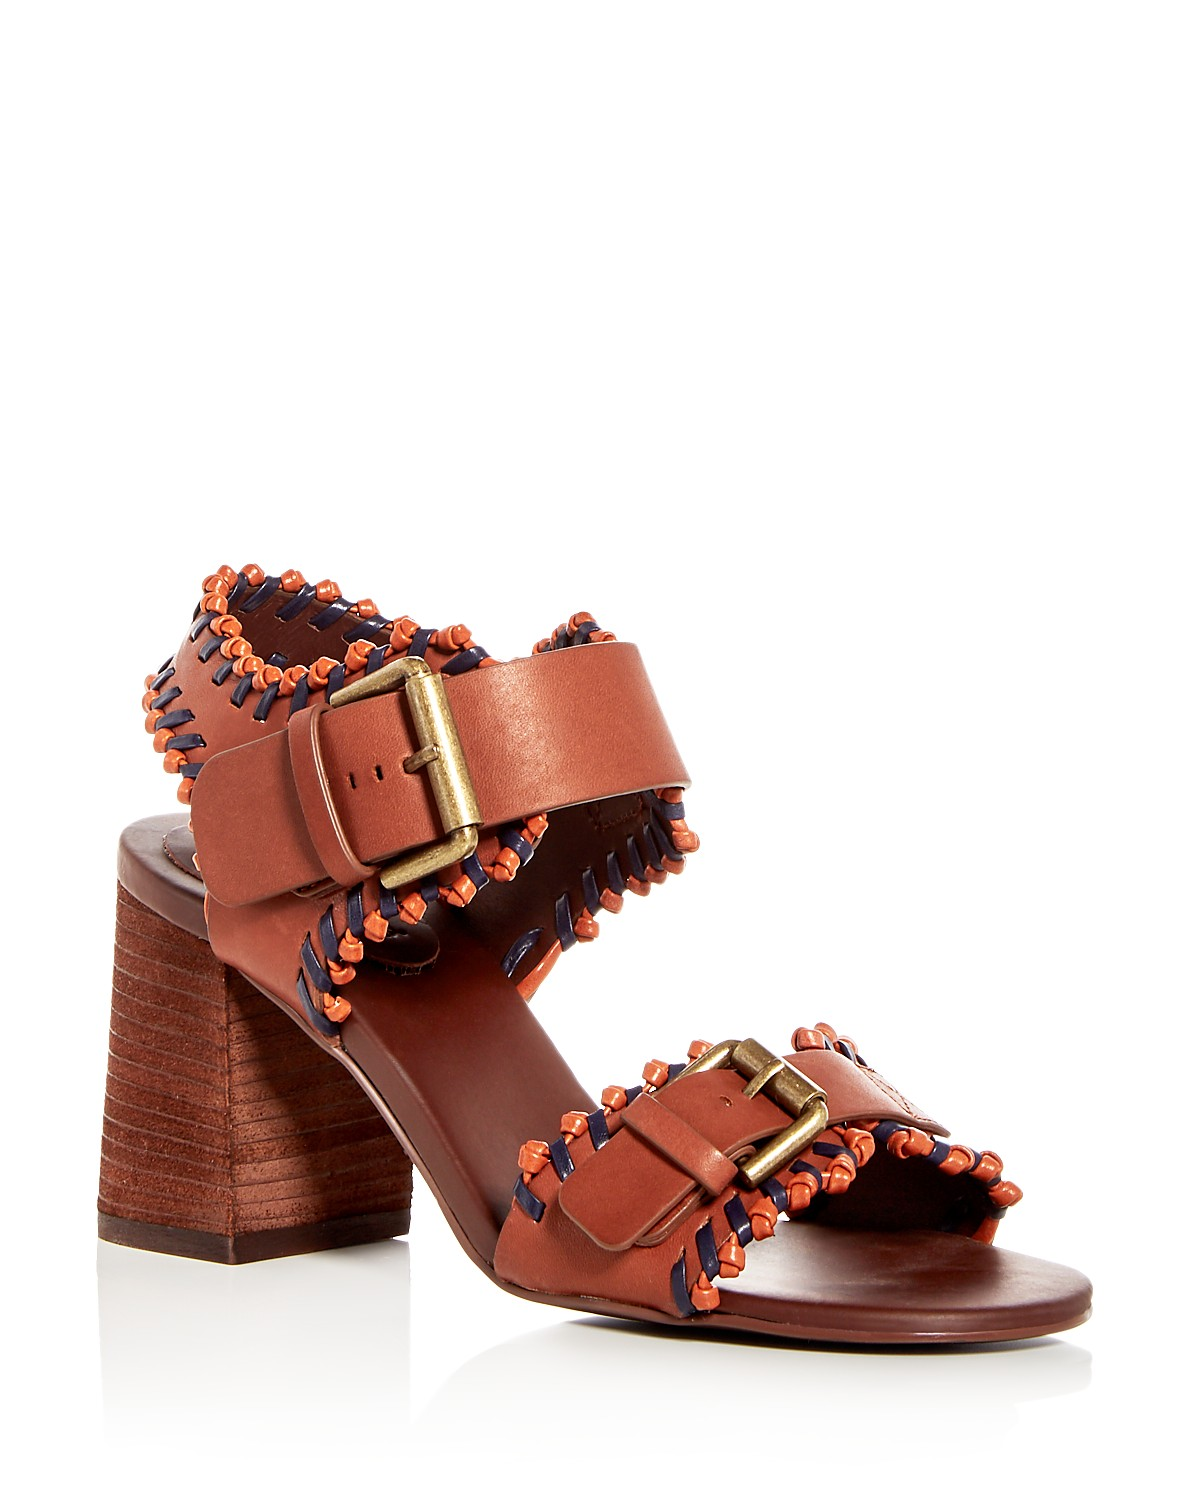 Chloé Women's Leather Whipstitch High Block Heel Sandals Footlocker Finishline Cheap Price 2018 New Cheap Price Outlet Visit New MC2QizzZ